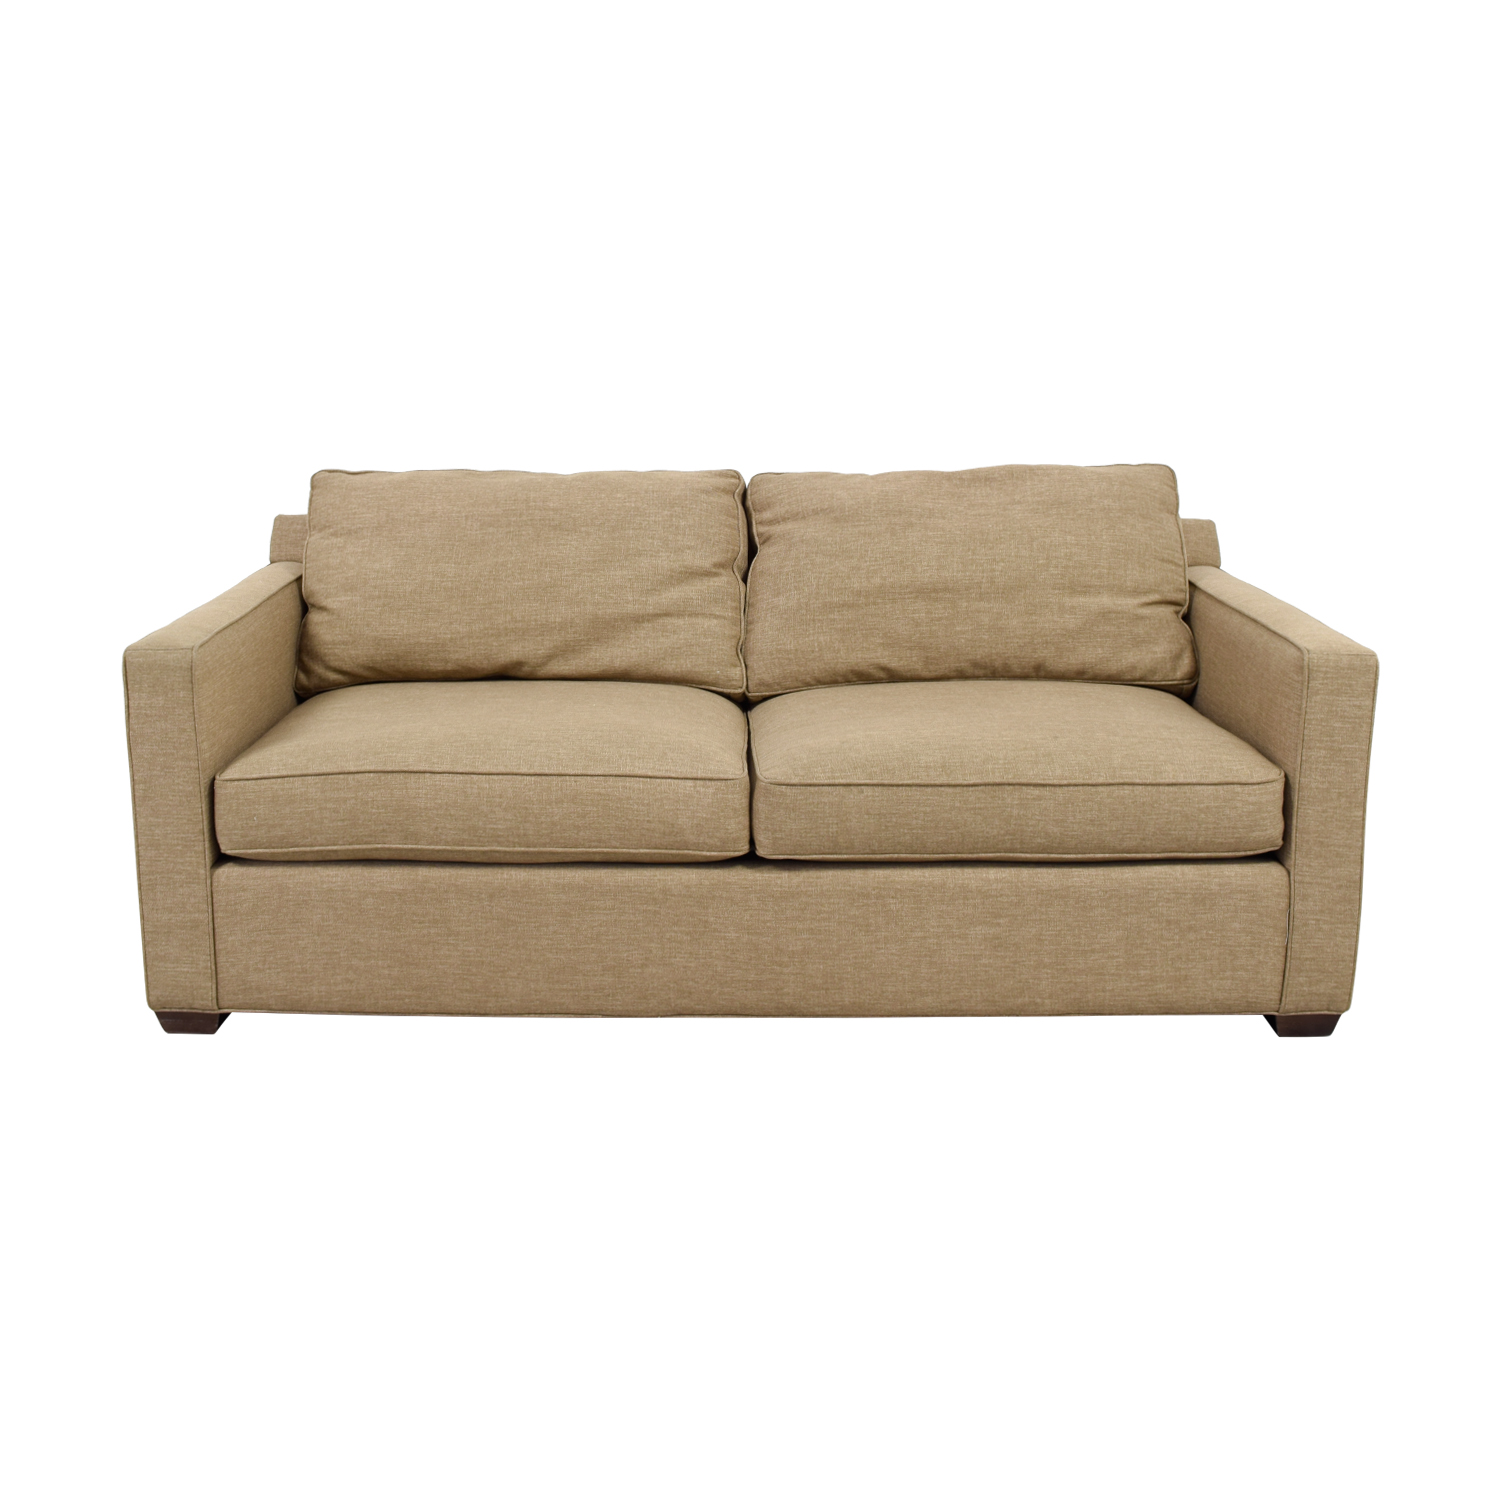 Crate & Barrel Crate & Barrel Davis Tan Two-Cushion Sofa